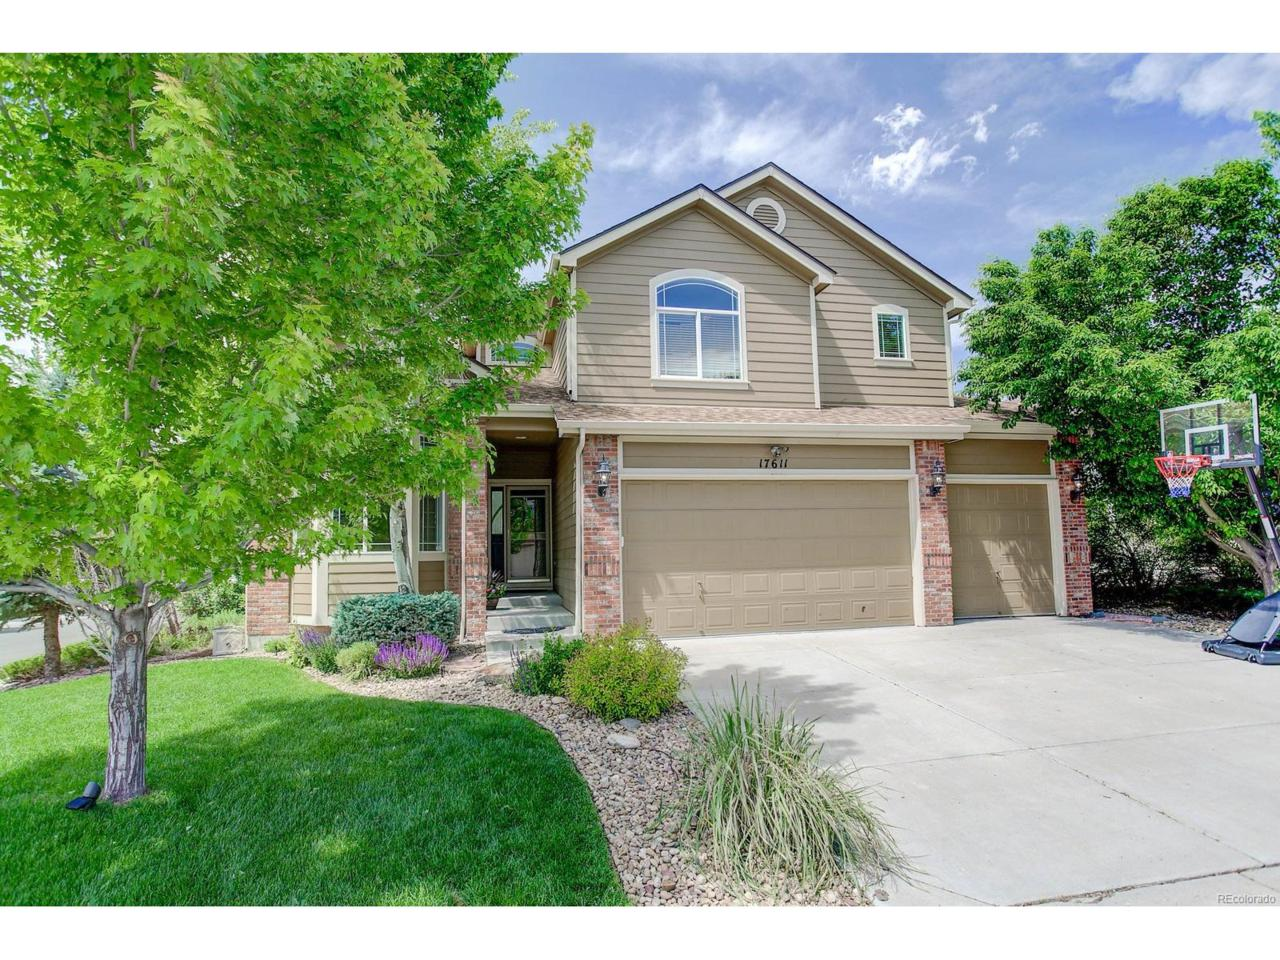 17611 E Weaver Place, Aurora, CO 80016 (MLS #9926817) :: 8z Real Estate